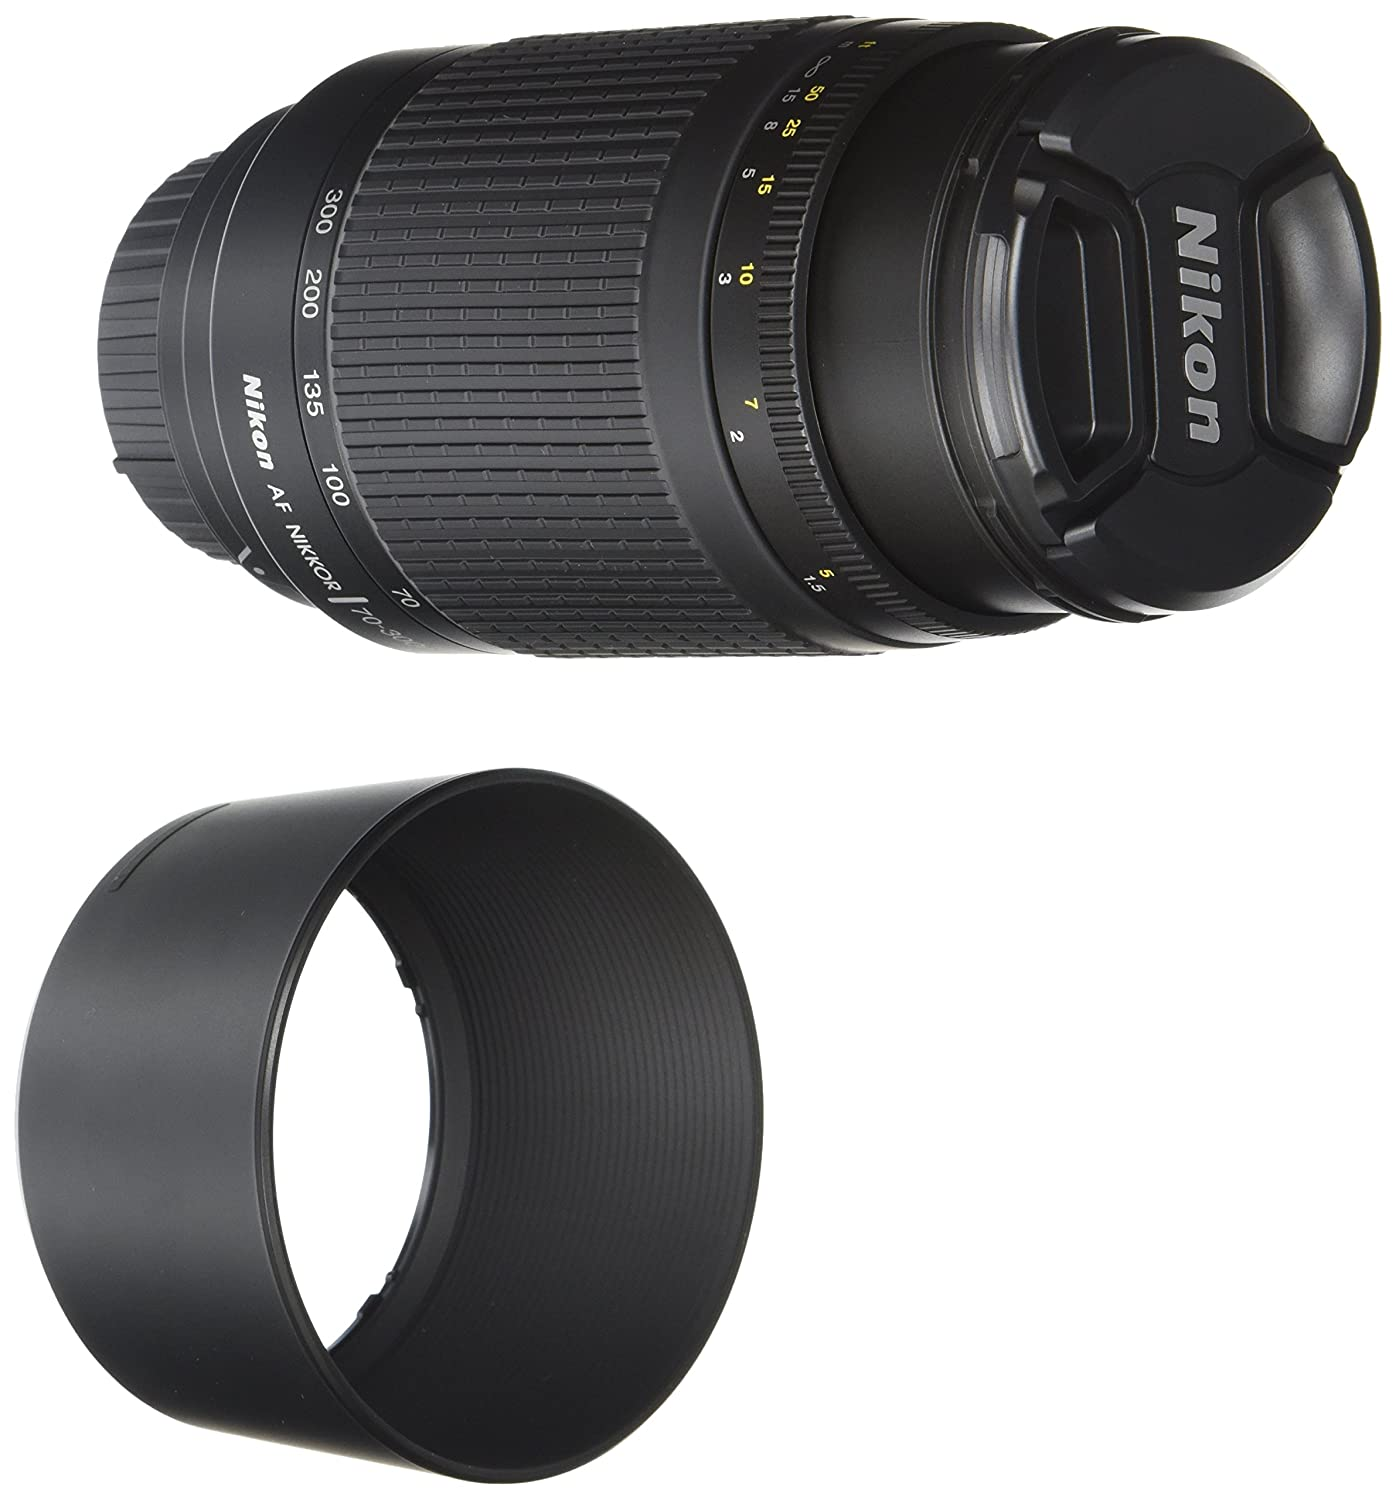 Amazon.com : Nikon 70-300 mm f/4-5.6G Zoom Lens with Auto Focus ...